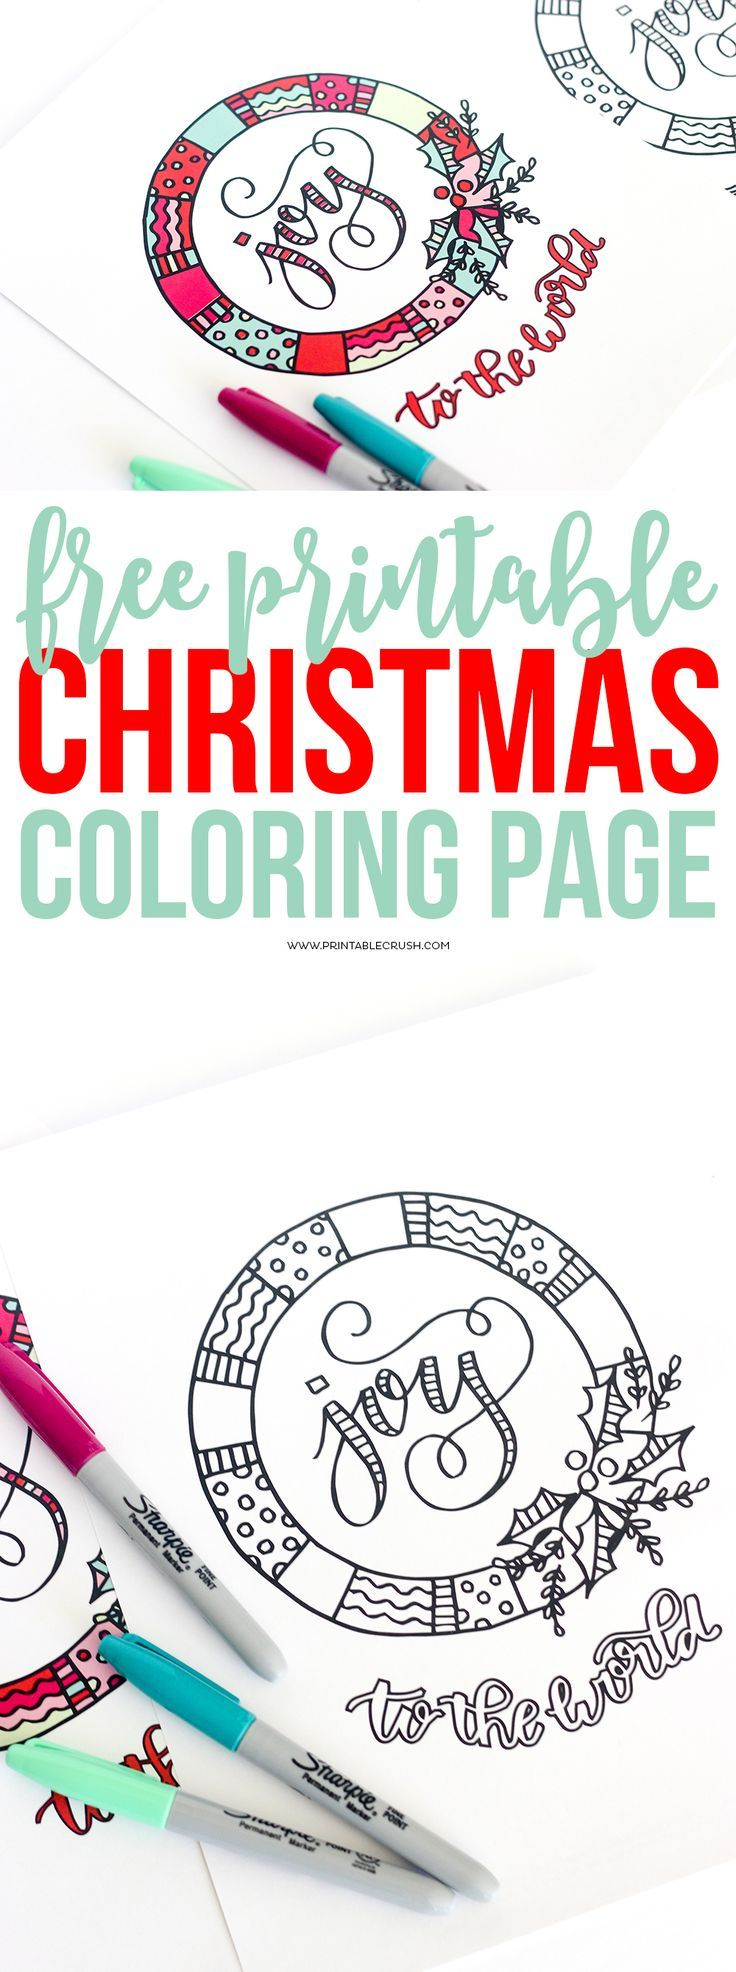 Christmas coloring activities printable - Print Off Some Of These Free Printable Christmas Coloring Page For A Fun Activity For Kids